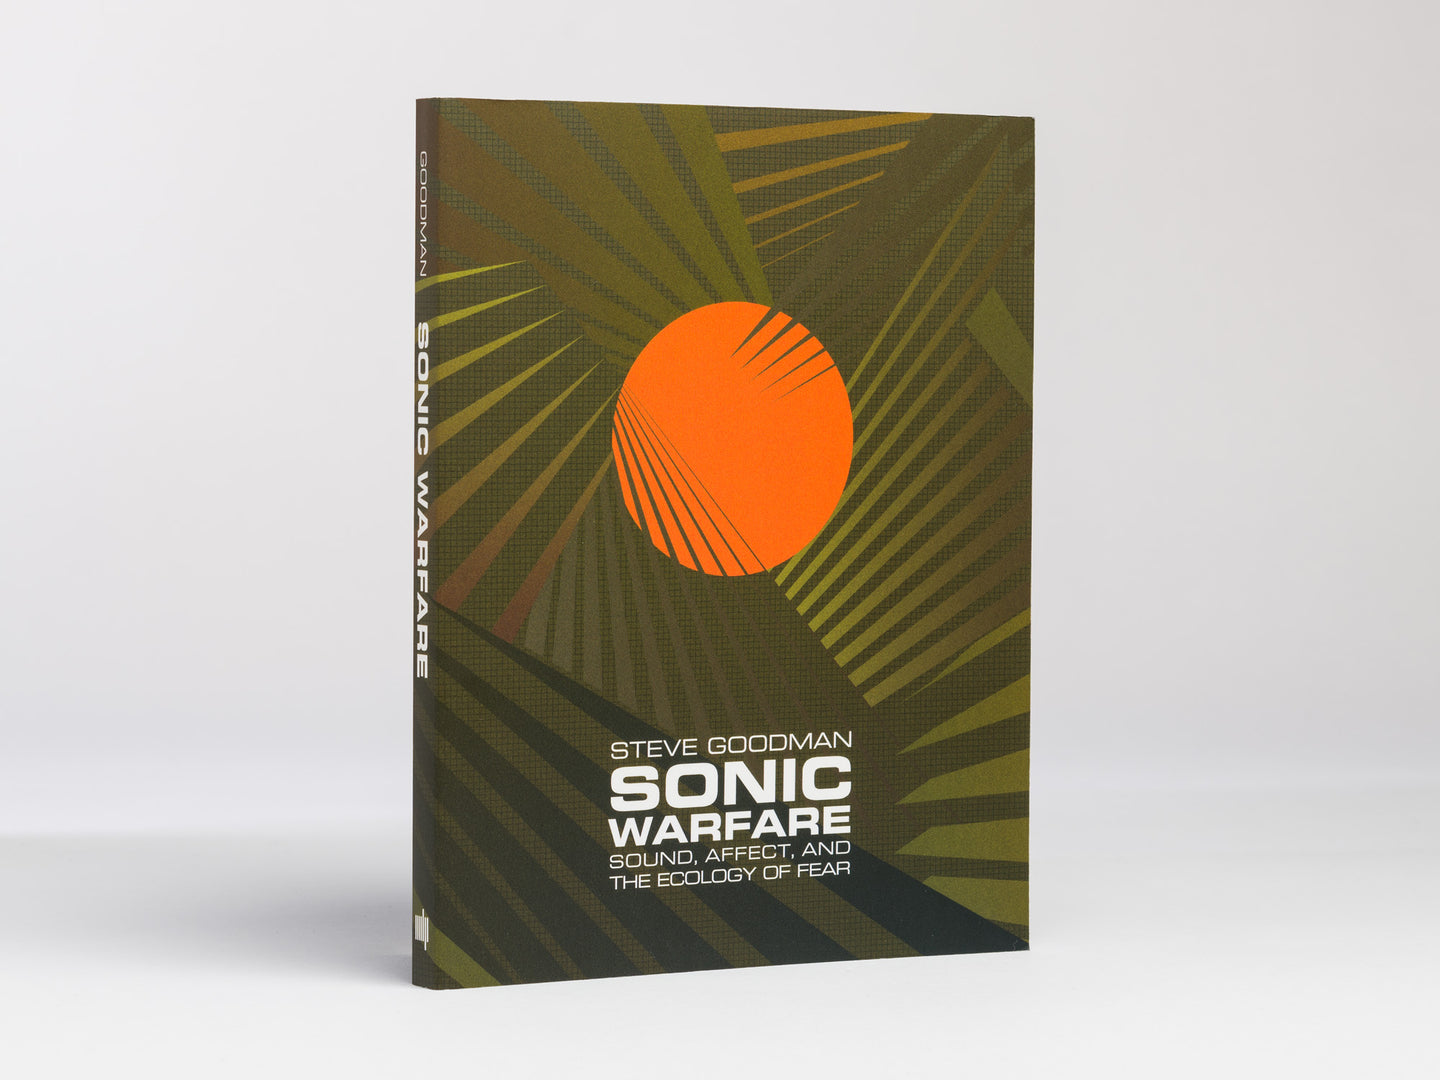 Sonic Warfare: Sound, Affect, and the Ecology of Fear - Steve Goodman